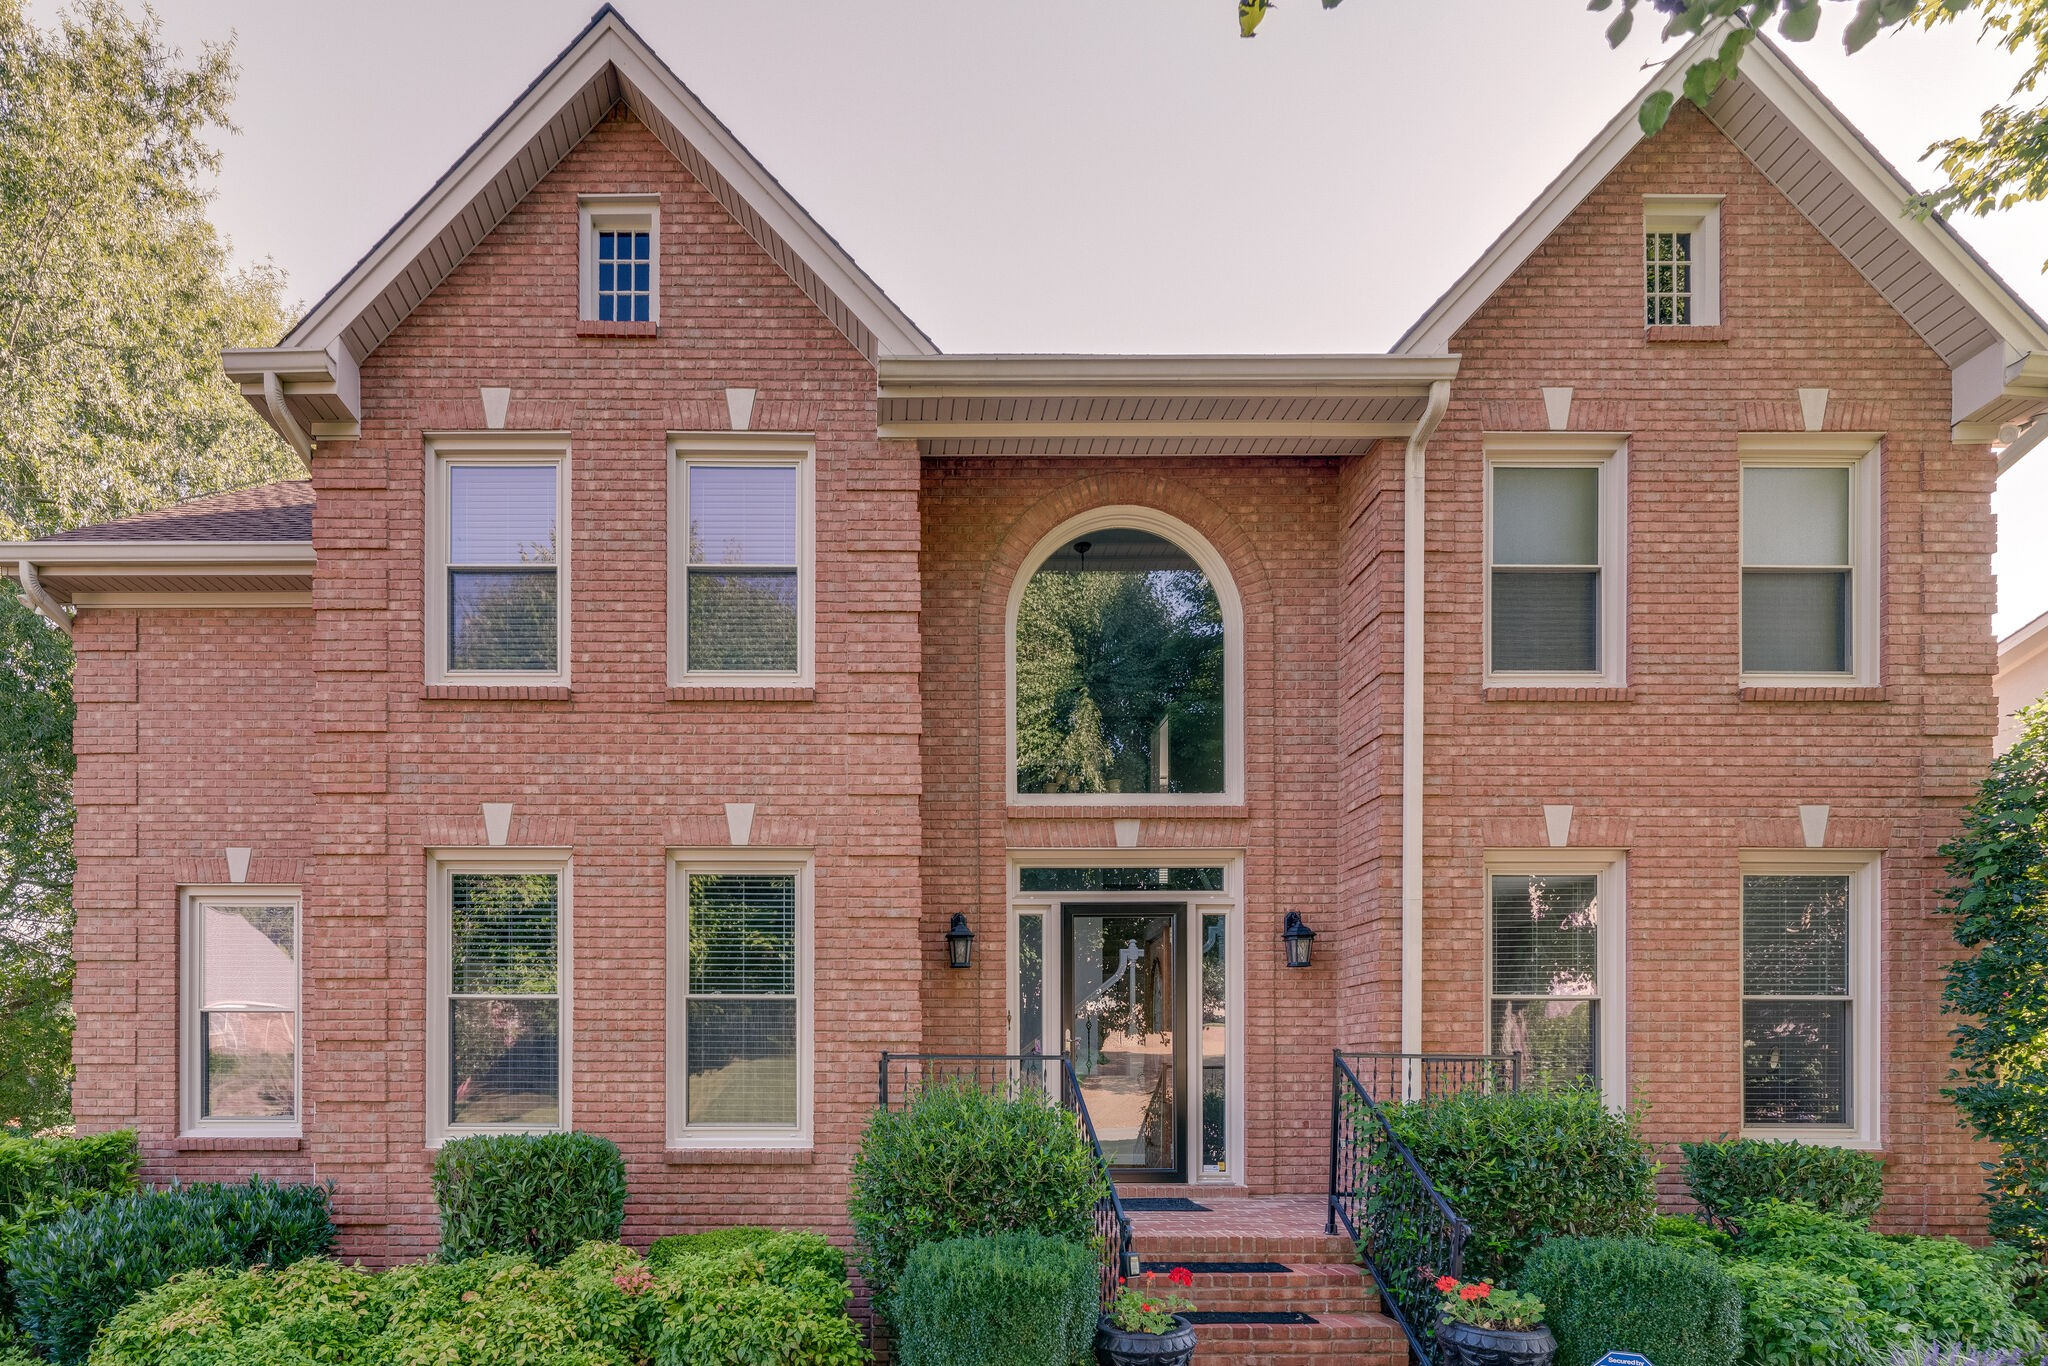 114 N Country Club Dr Property Photo - Hendersonville, TN real estate listing